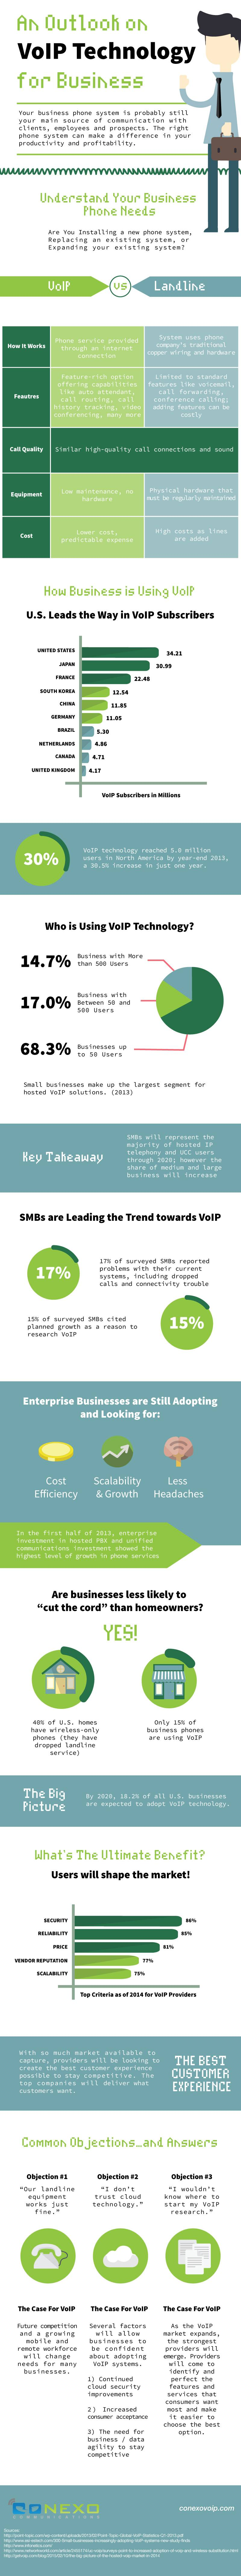 final-an-outlook-on-voip-technology-for-business-compressed